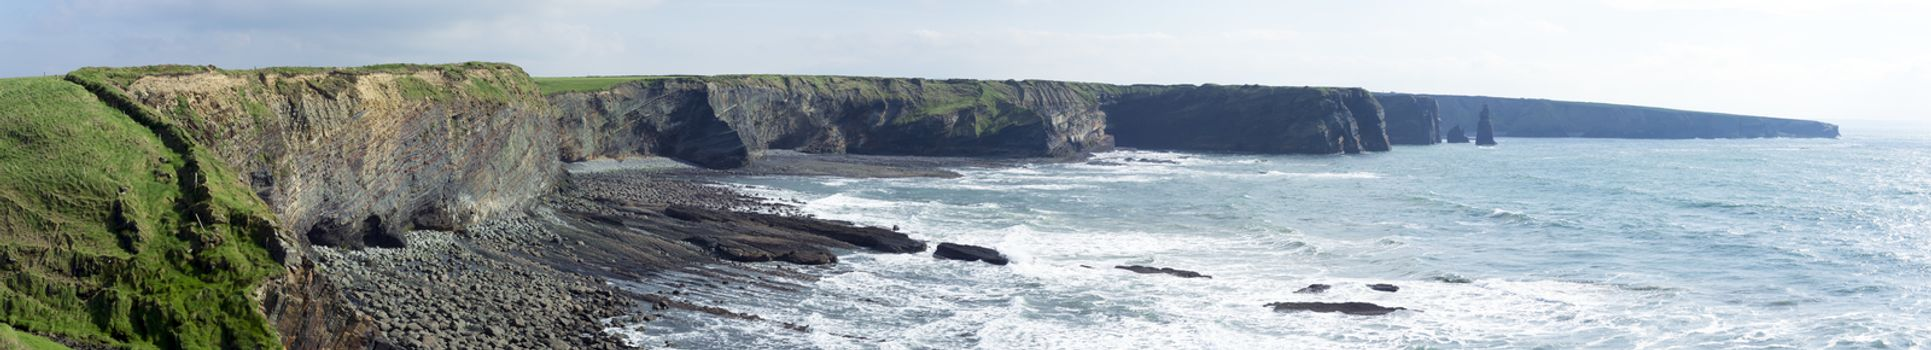 rocky coastline and cliffs in county kerry ireland on the wild atlantic way